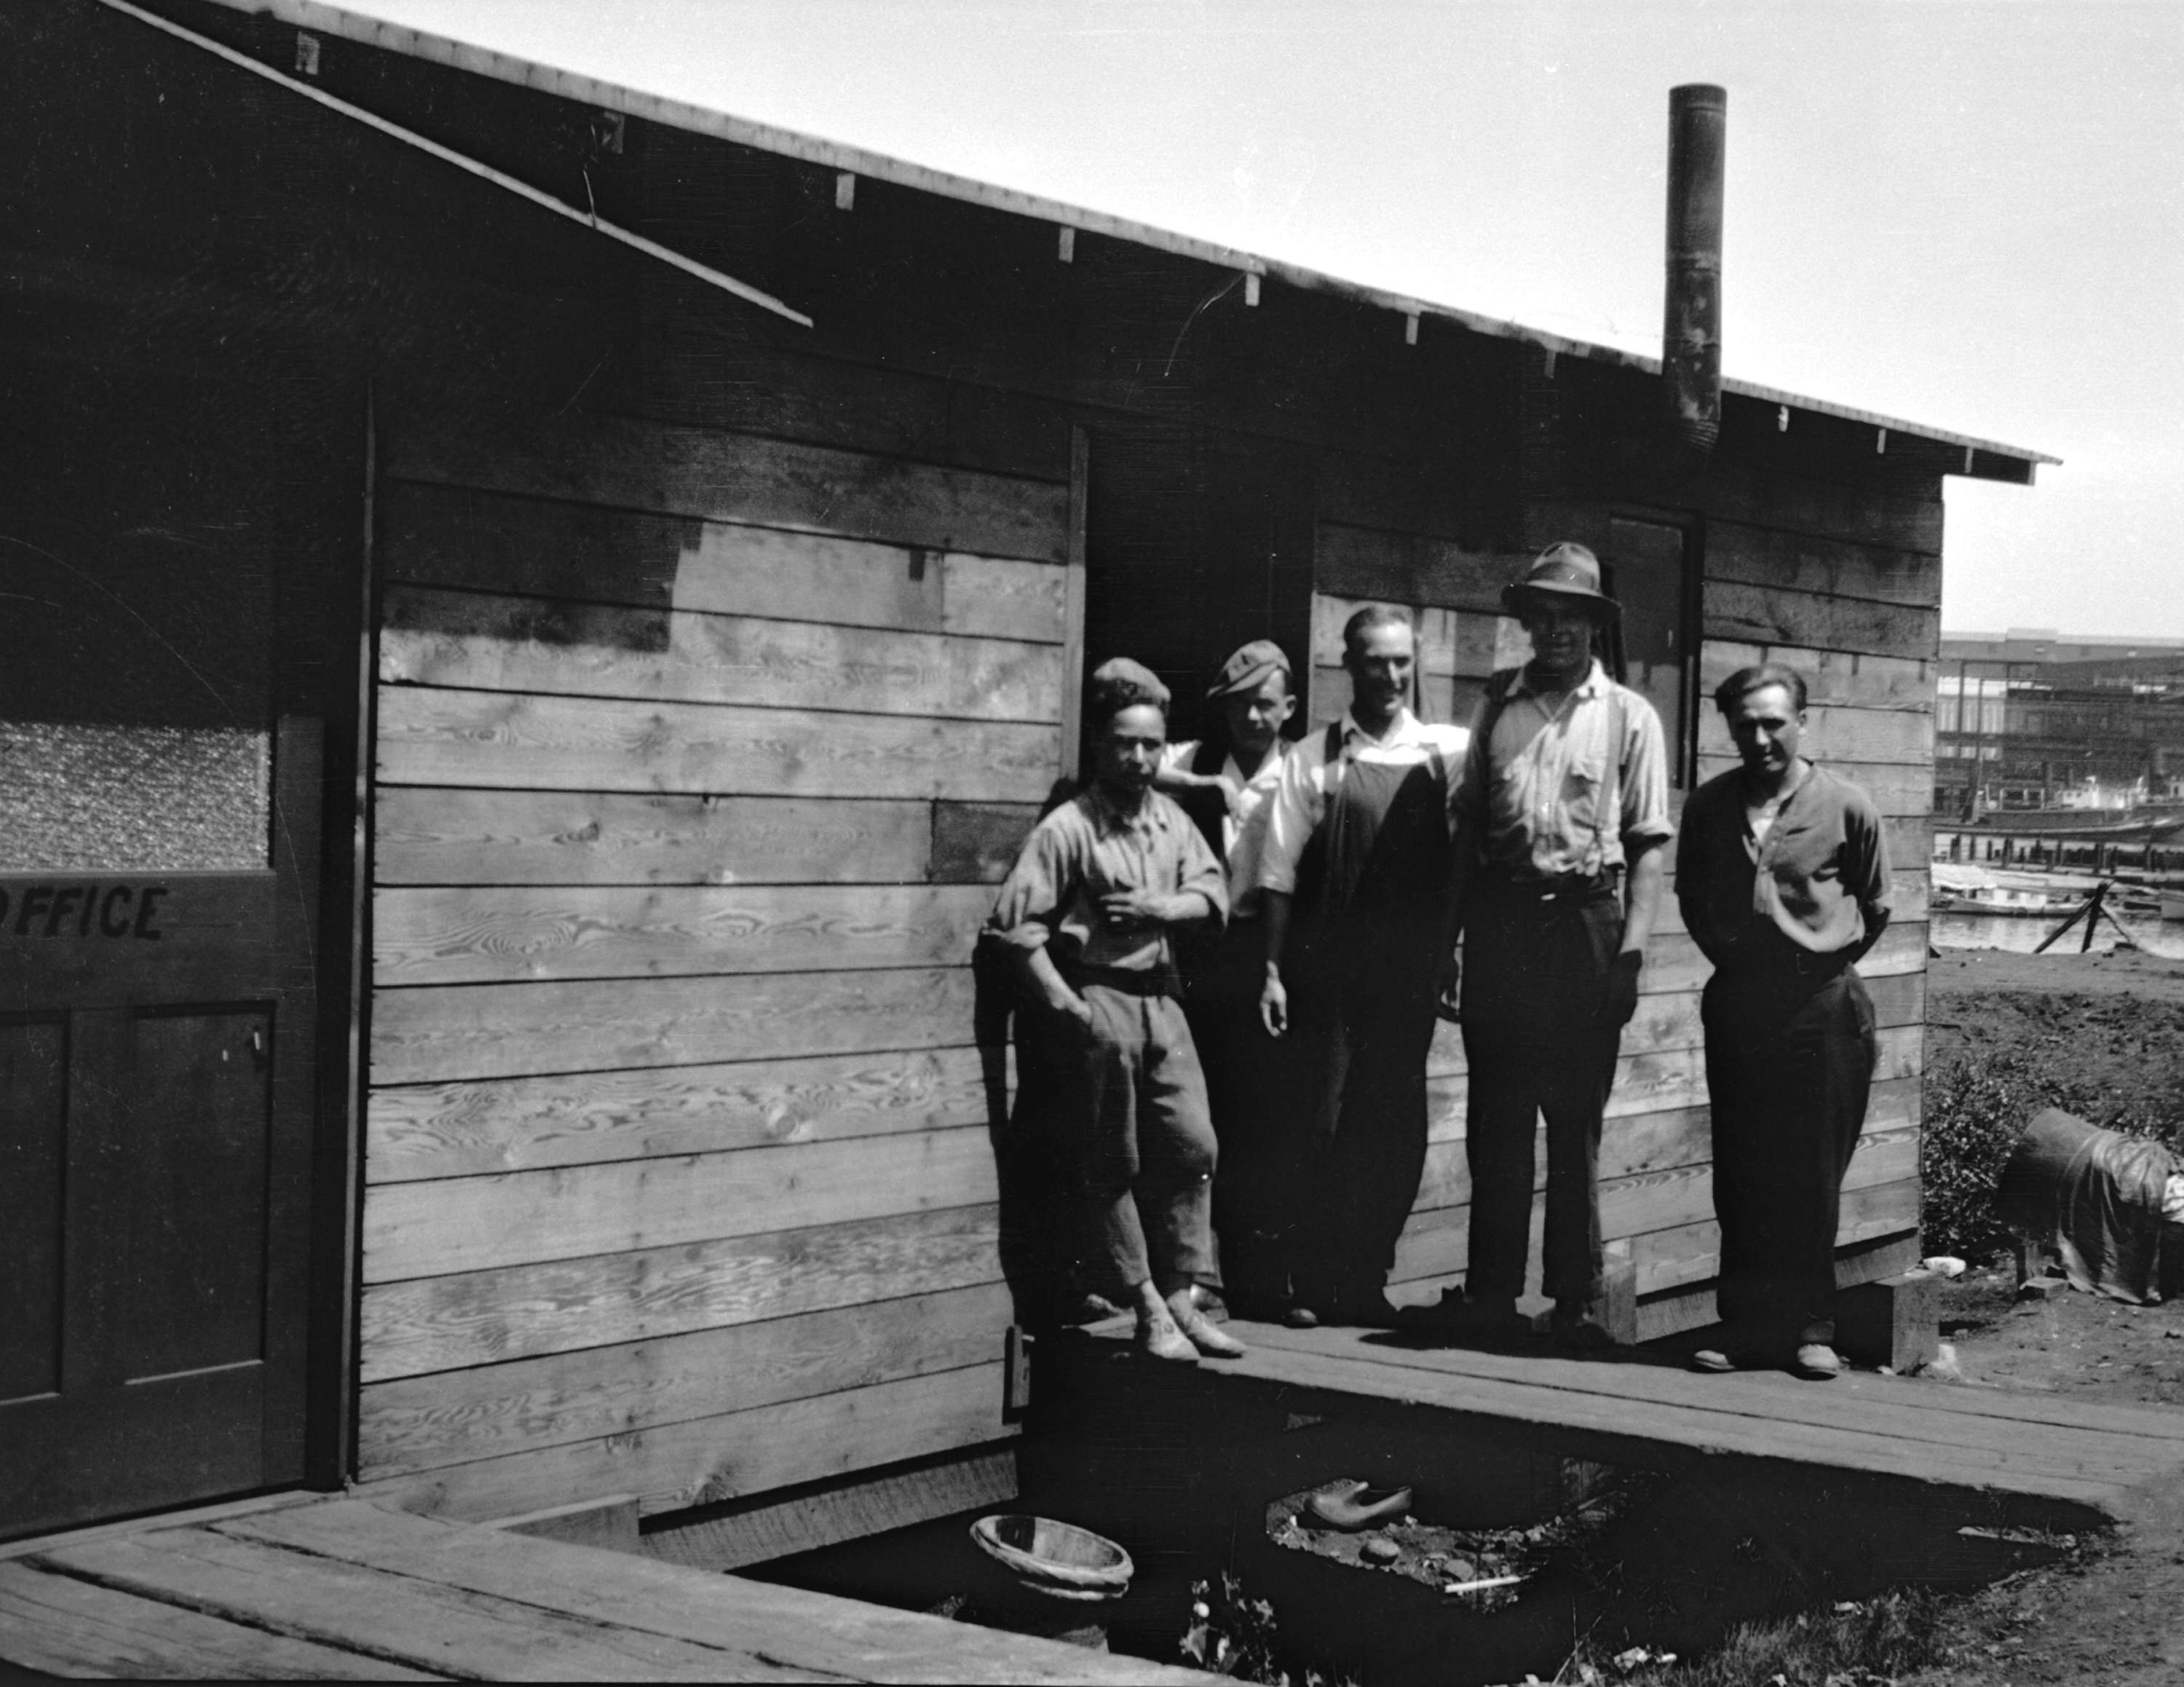 Five men stand outside of a wooden shack.